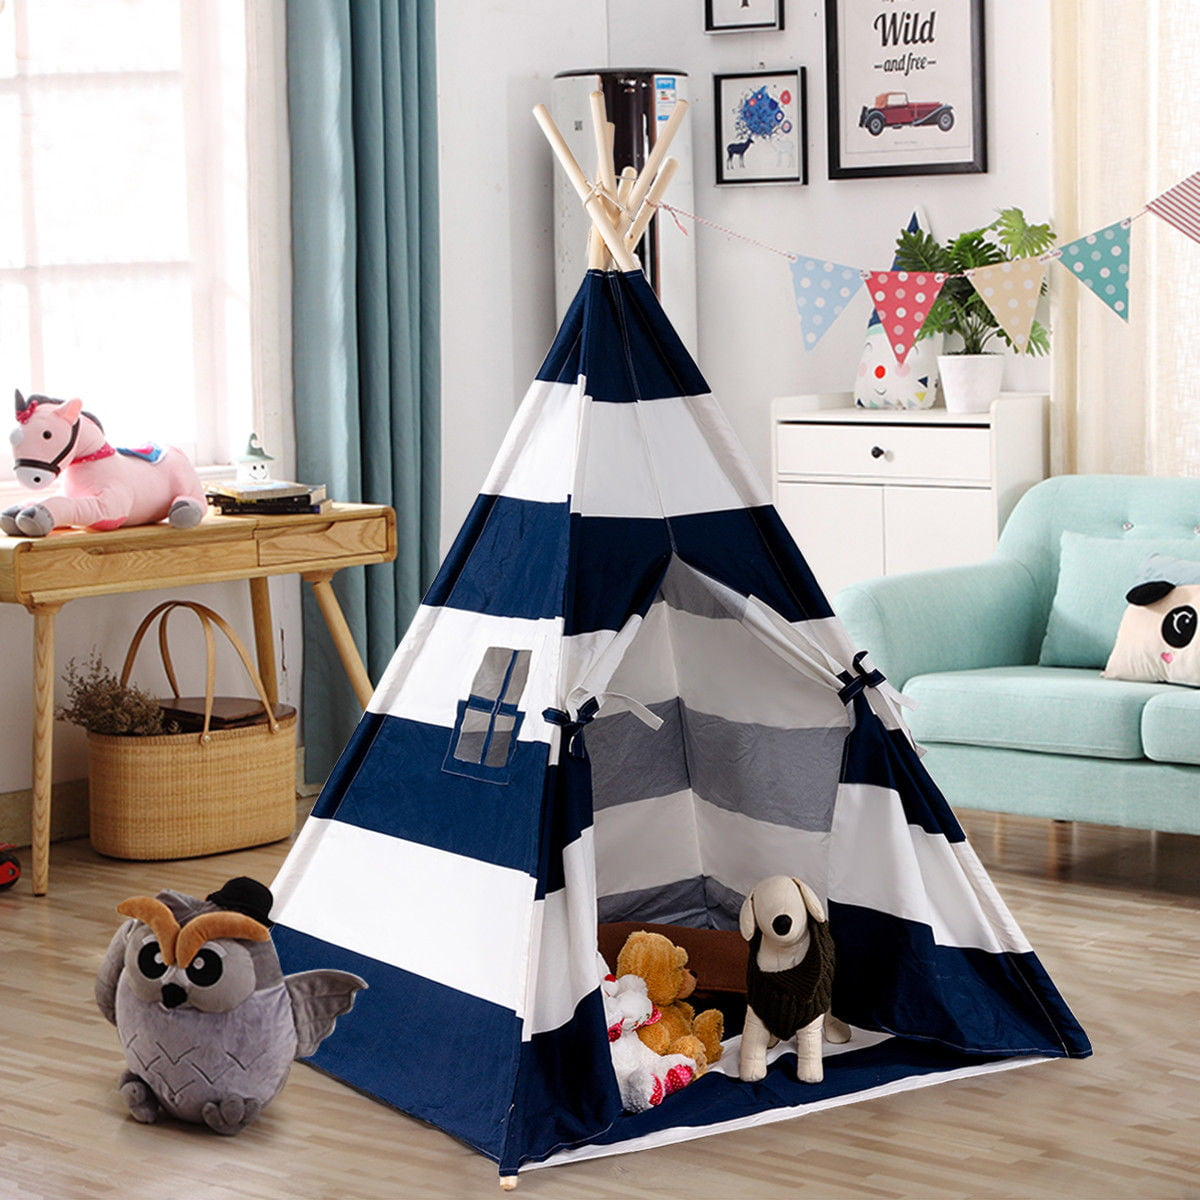 Gymax Portable Play Tent Teepee Children Playhouse Sleeping Dome w Carry Bag by Gymax